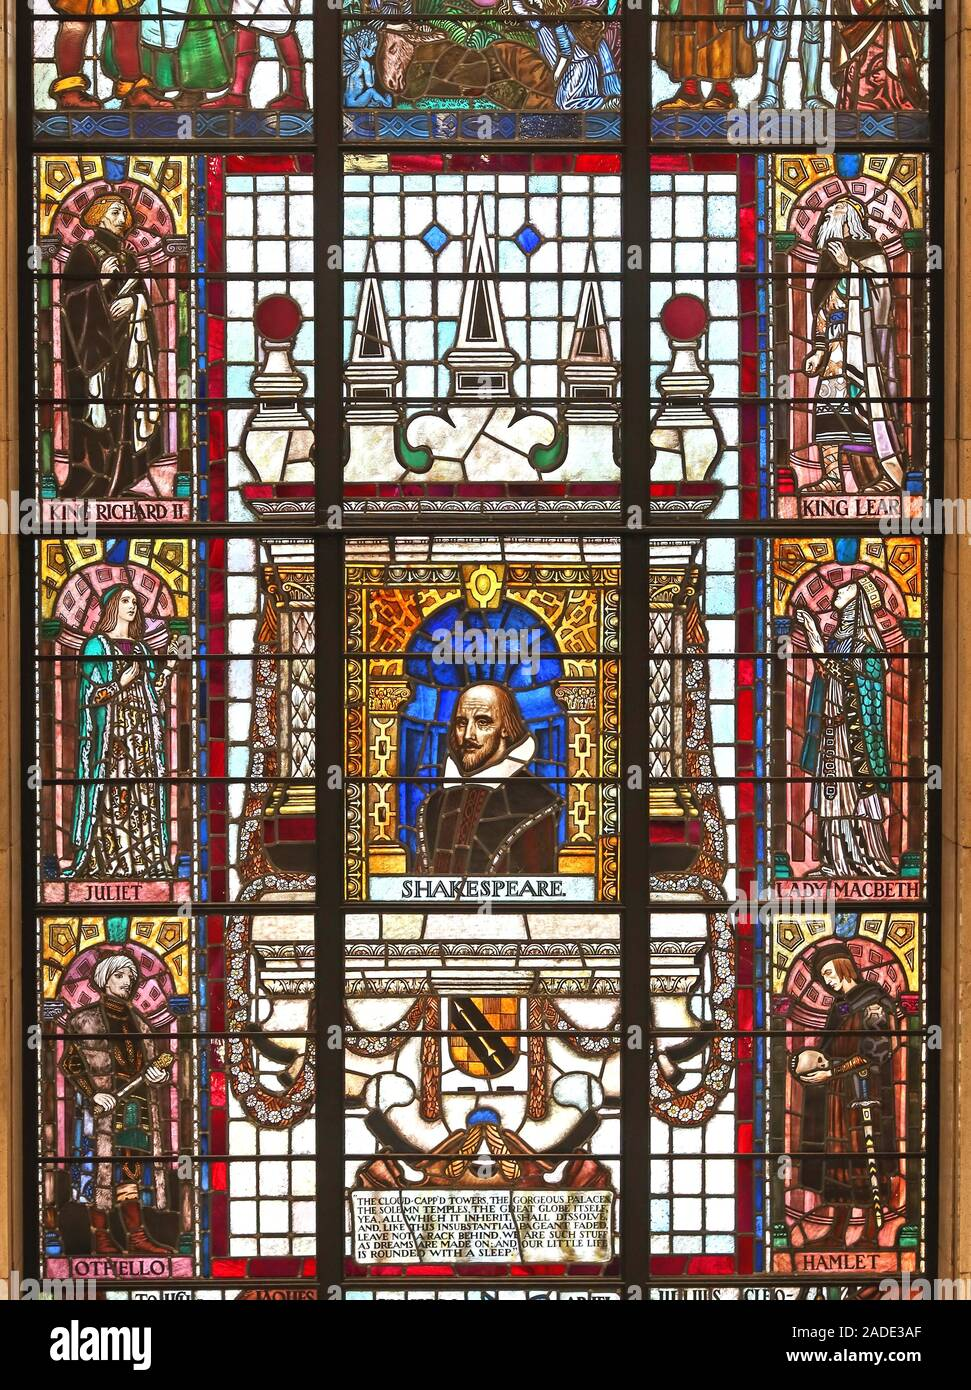 GoTonySmith,HotpixUK,@HotpixUK,City Centre,North west England,UK,Manchester,library,Central library,Stained Glass,window,Shakespeare,Windows,City,Bard,art,literature,SJ8397,Shakespeare Window,scenes,Robert Anning Bell,Mrs Rosa Grindon,Leo Grindon,M2,English,playwright,poet,actor,Englands national Poet,Stratford-upon-Avon,Stratford